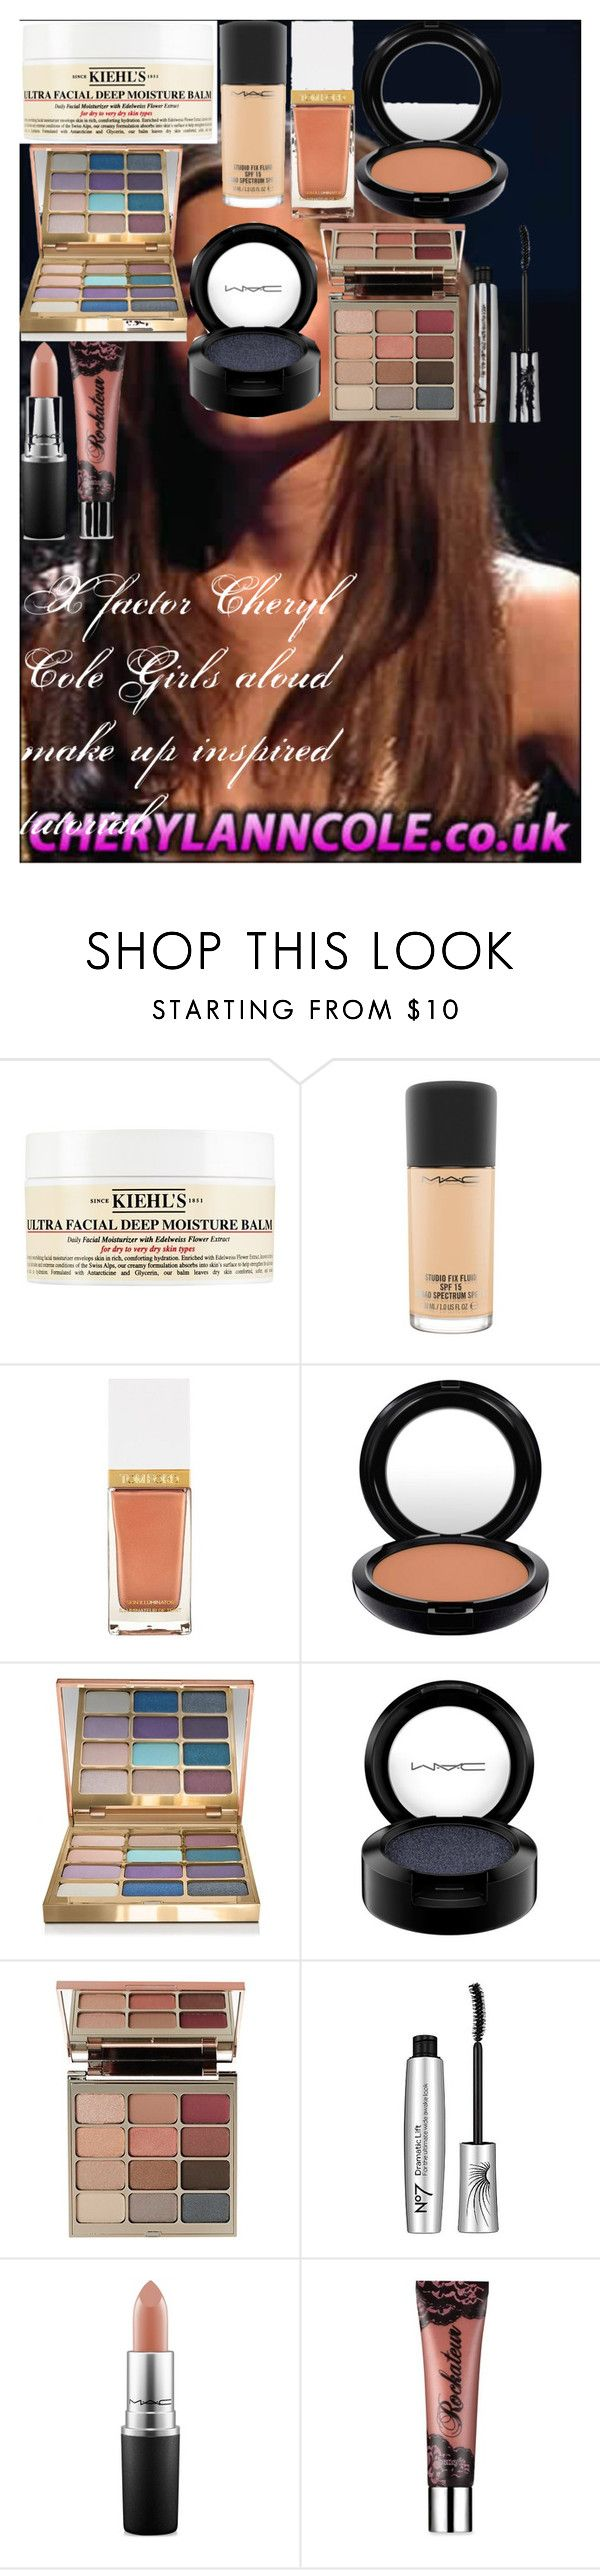 """""""X factor Cheryl Cole Girls aloud make up inspired tutorial"""" by oroartye-1 on Polyvore featuring beauty, Kiehl's, MAC Cosmetics, Tom Ford, Stila, Boots No7 and Benefit"""